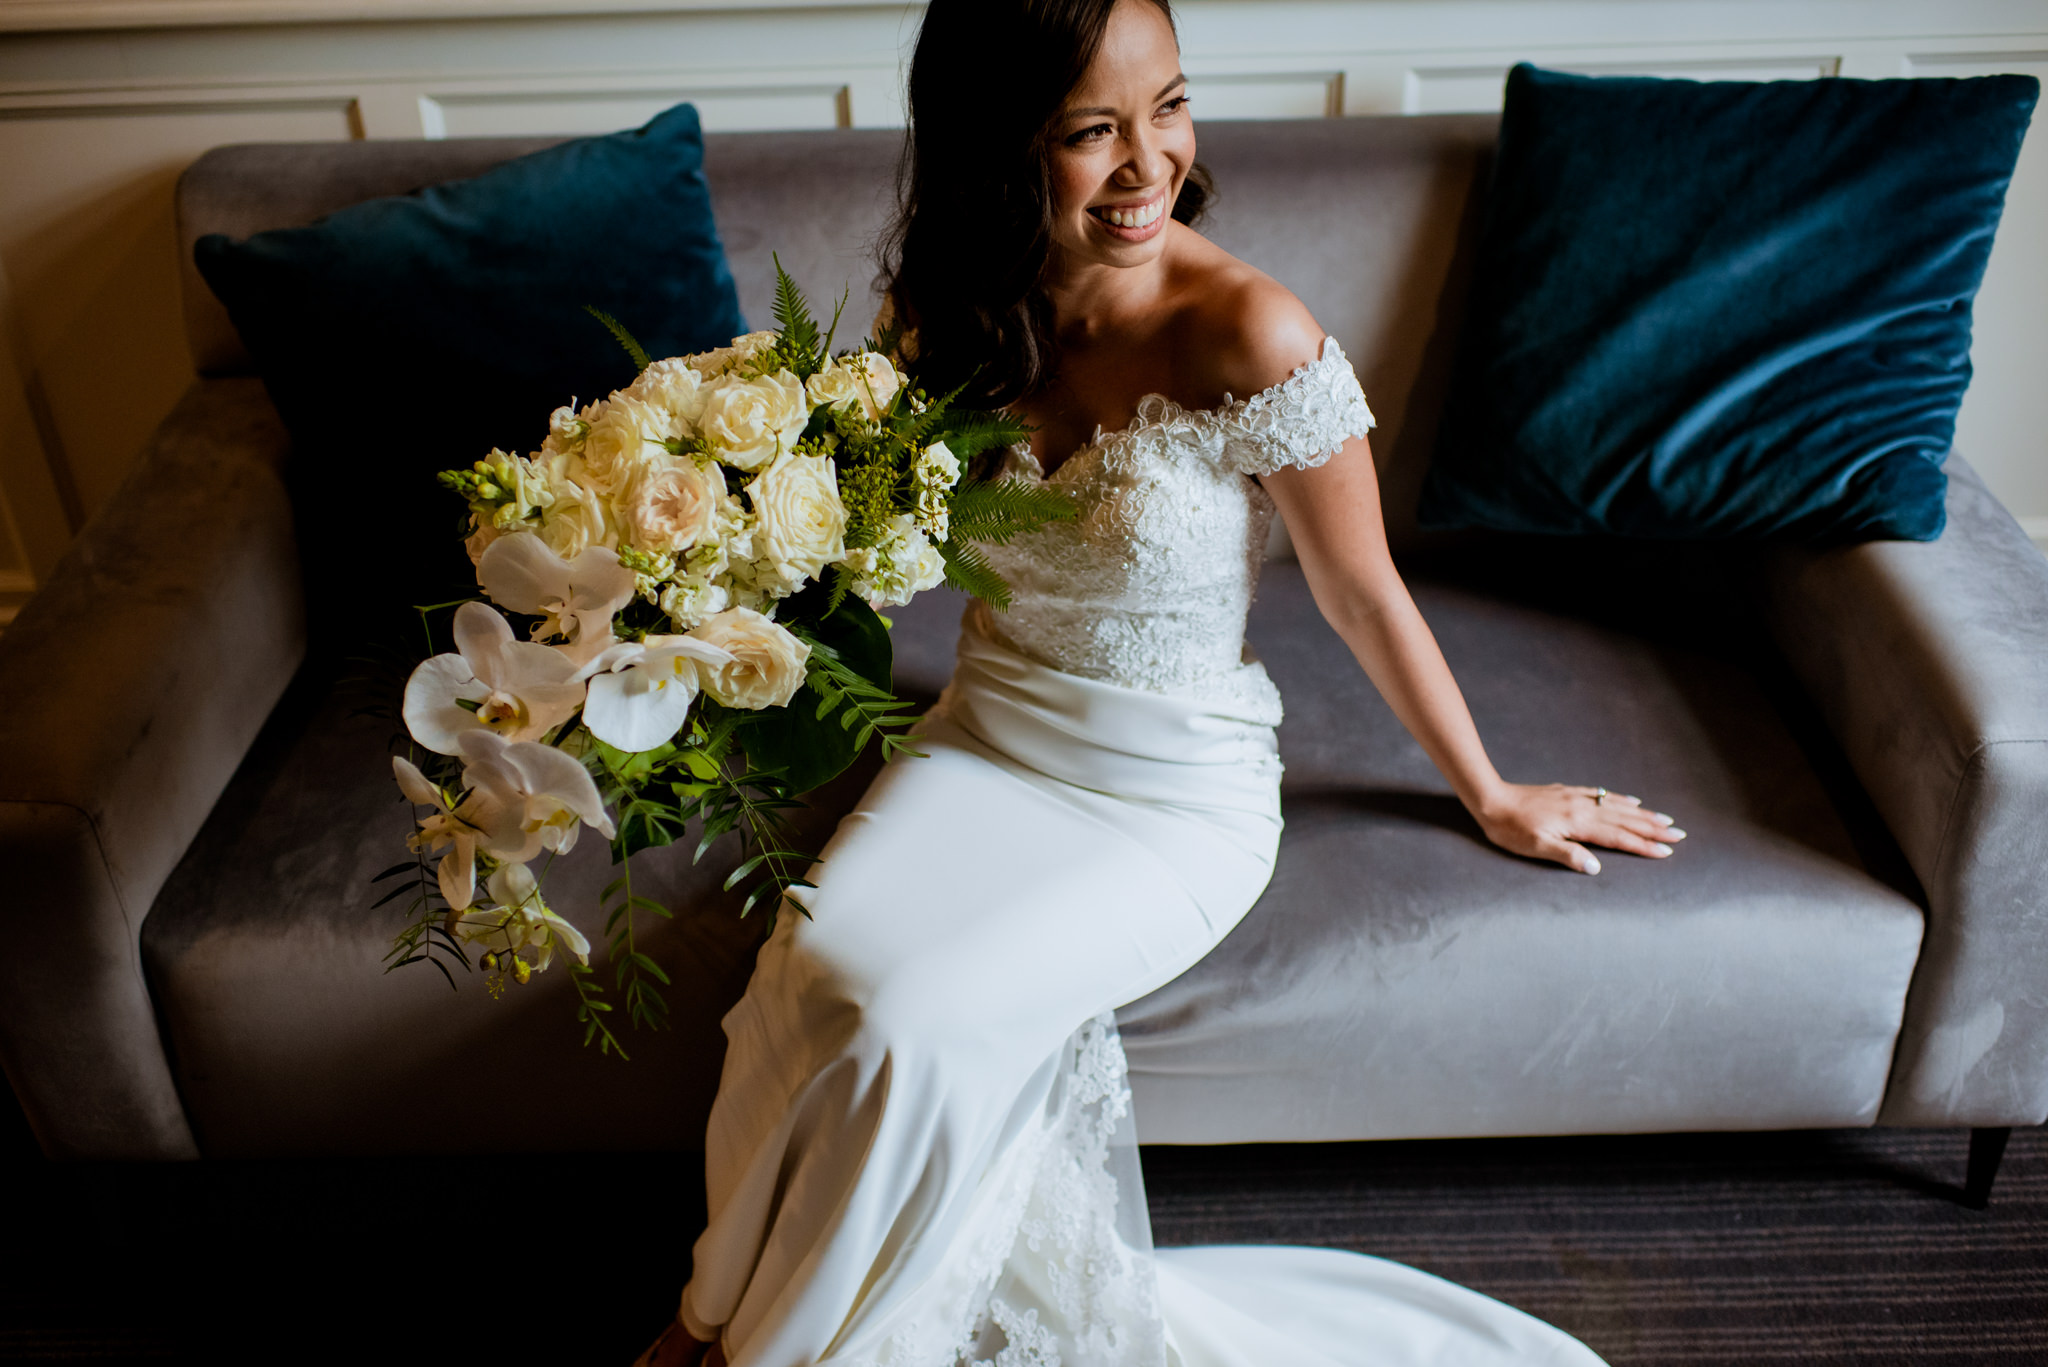 Bride sits on couch and laughs while posing with her wedding bouquet